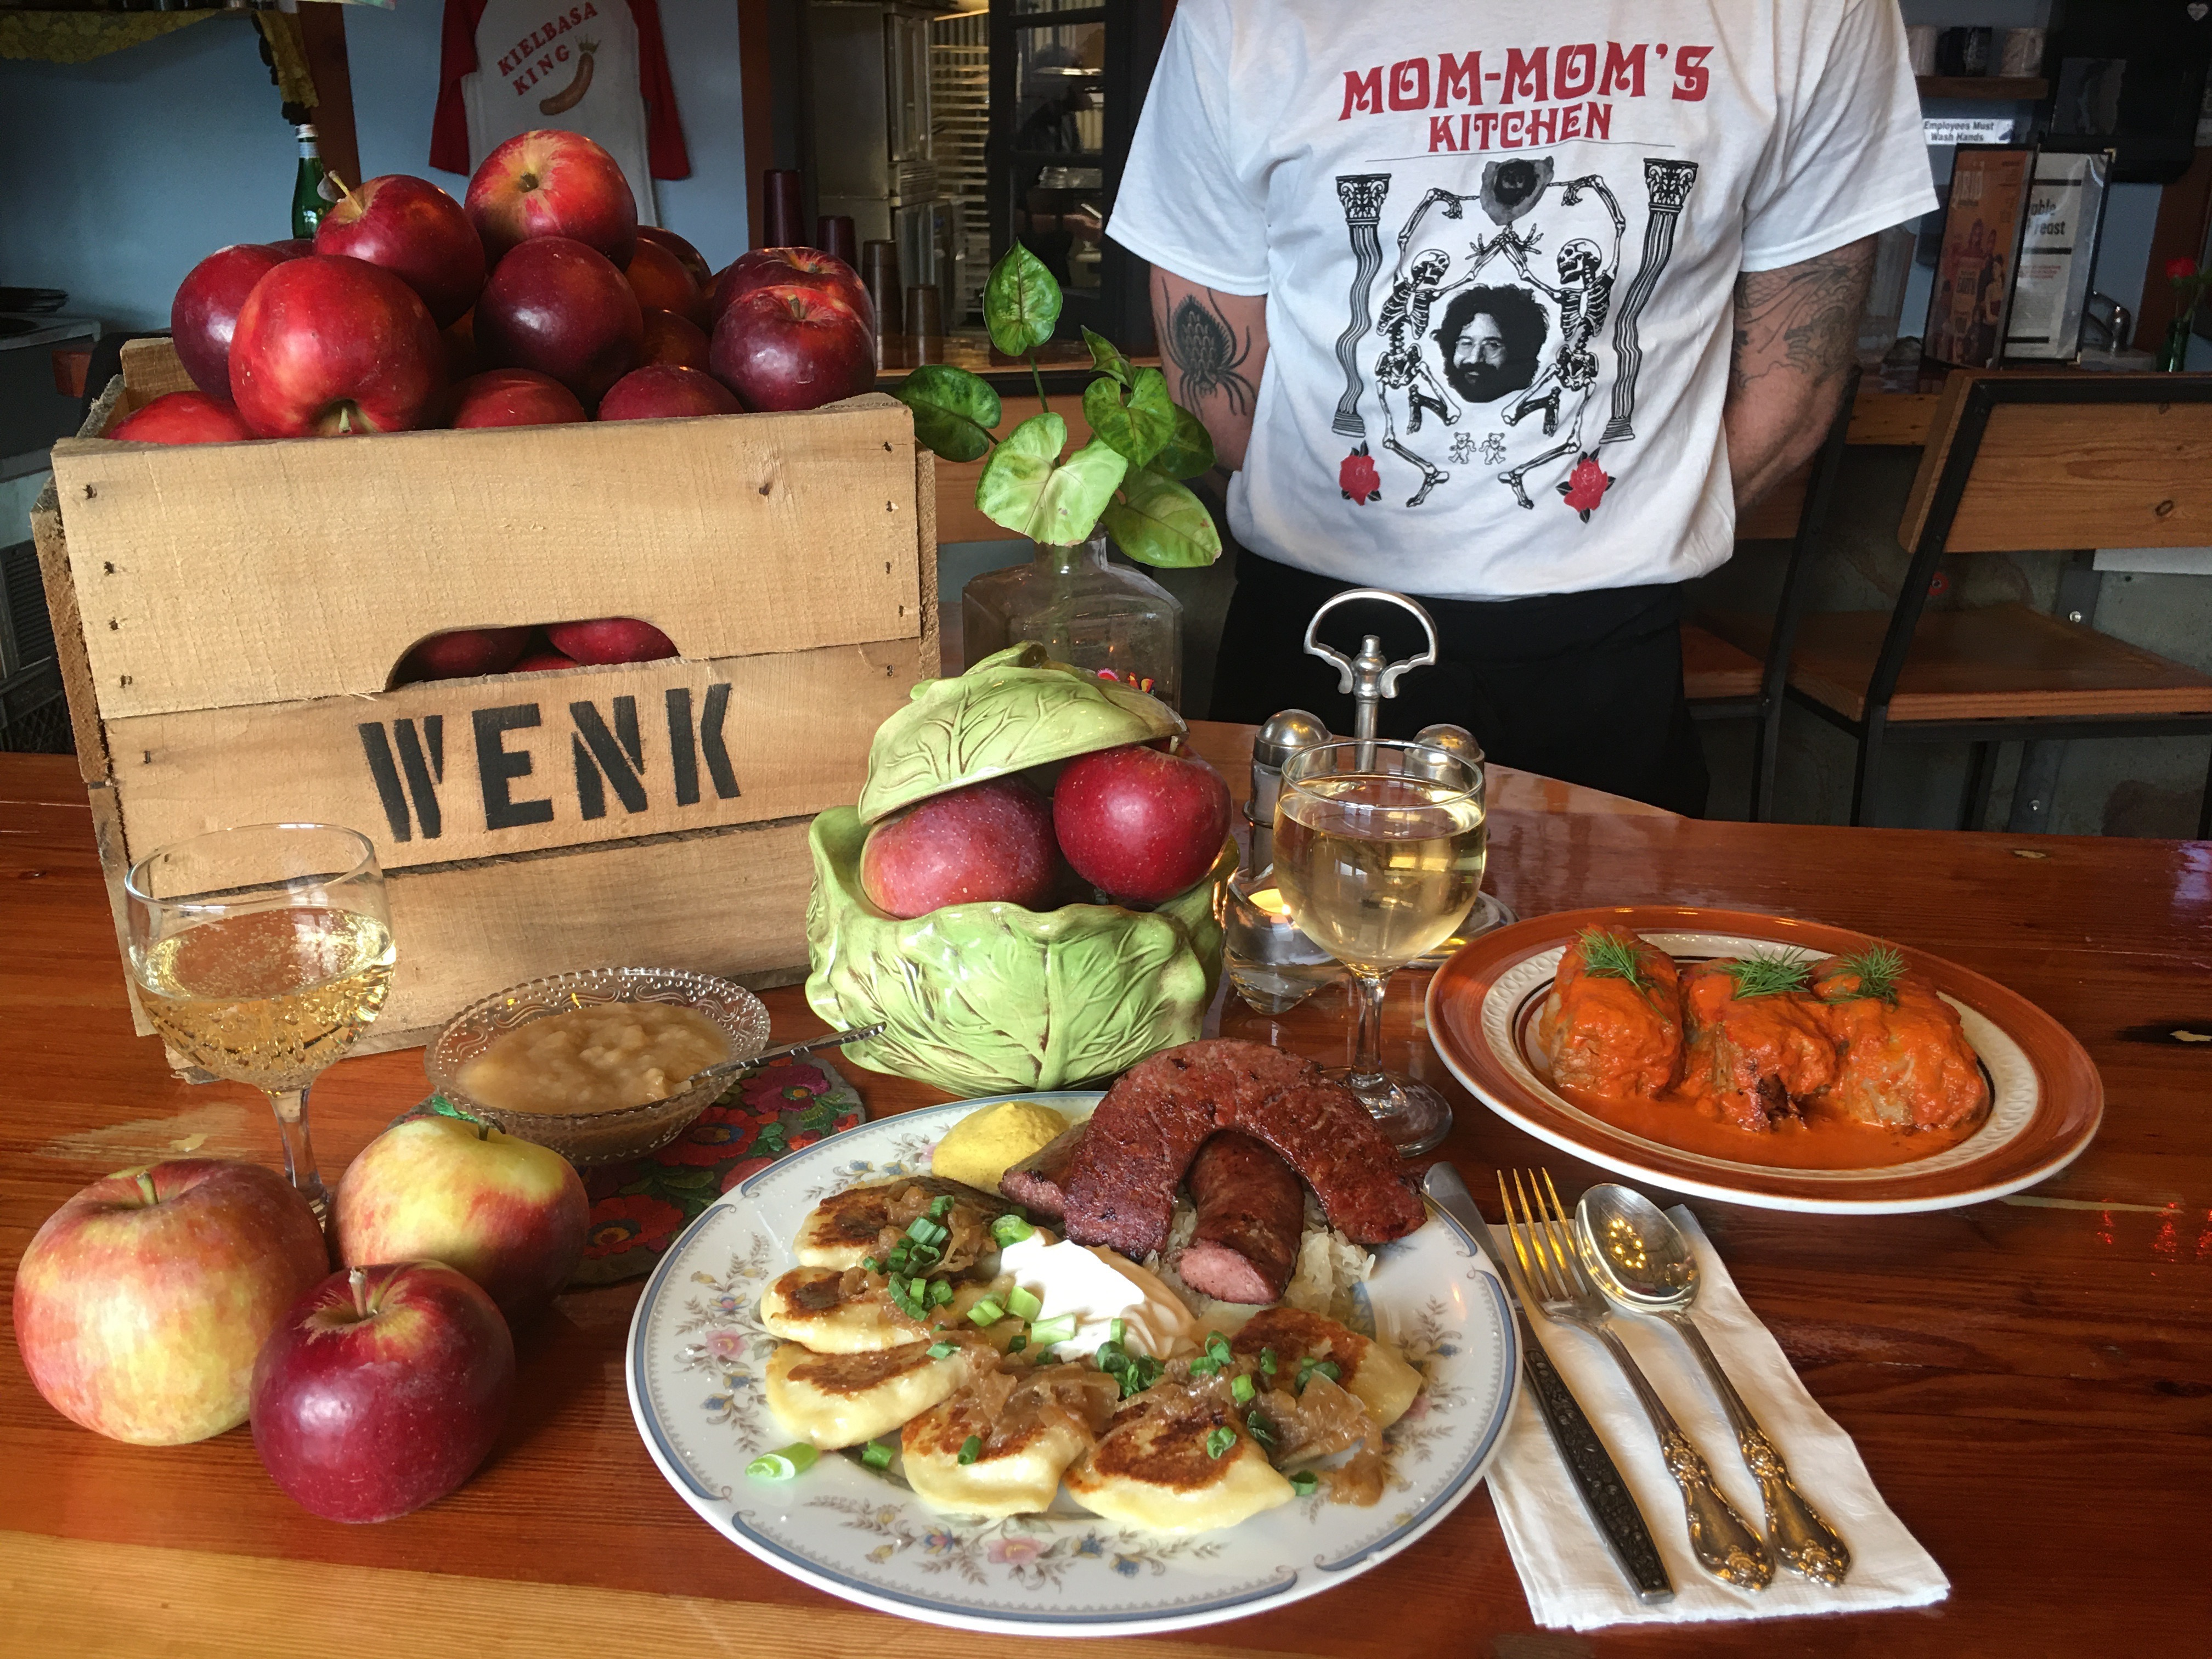 plate of polish food and person wearing shirt that says mom-mom's